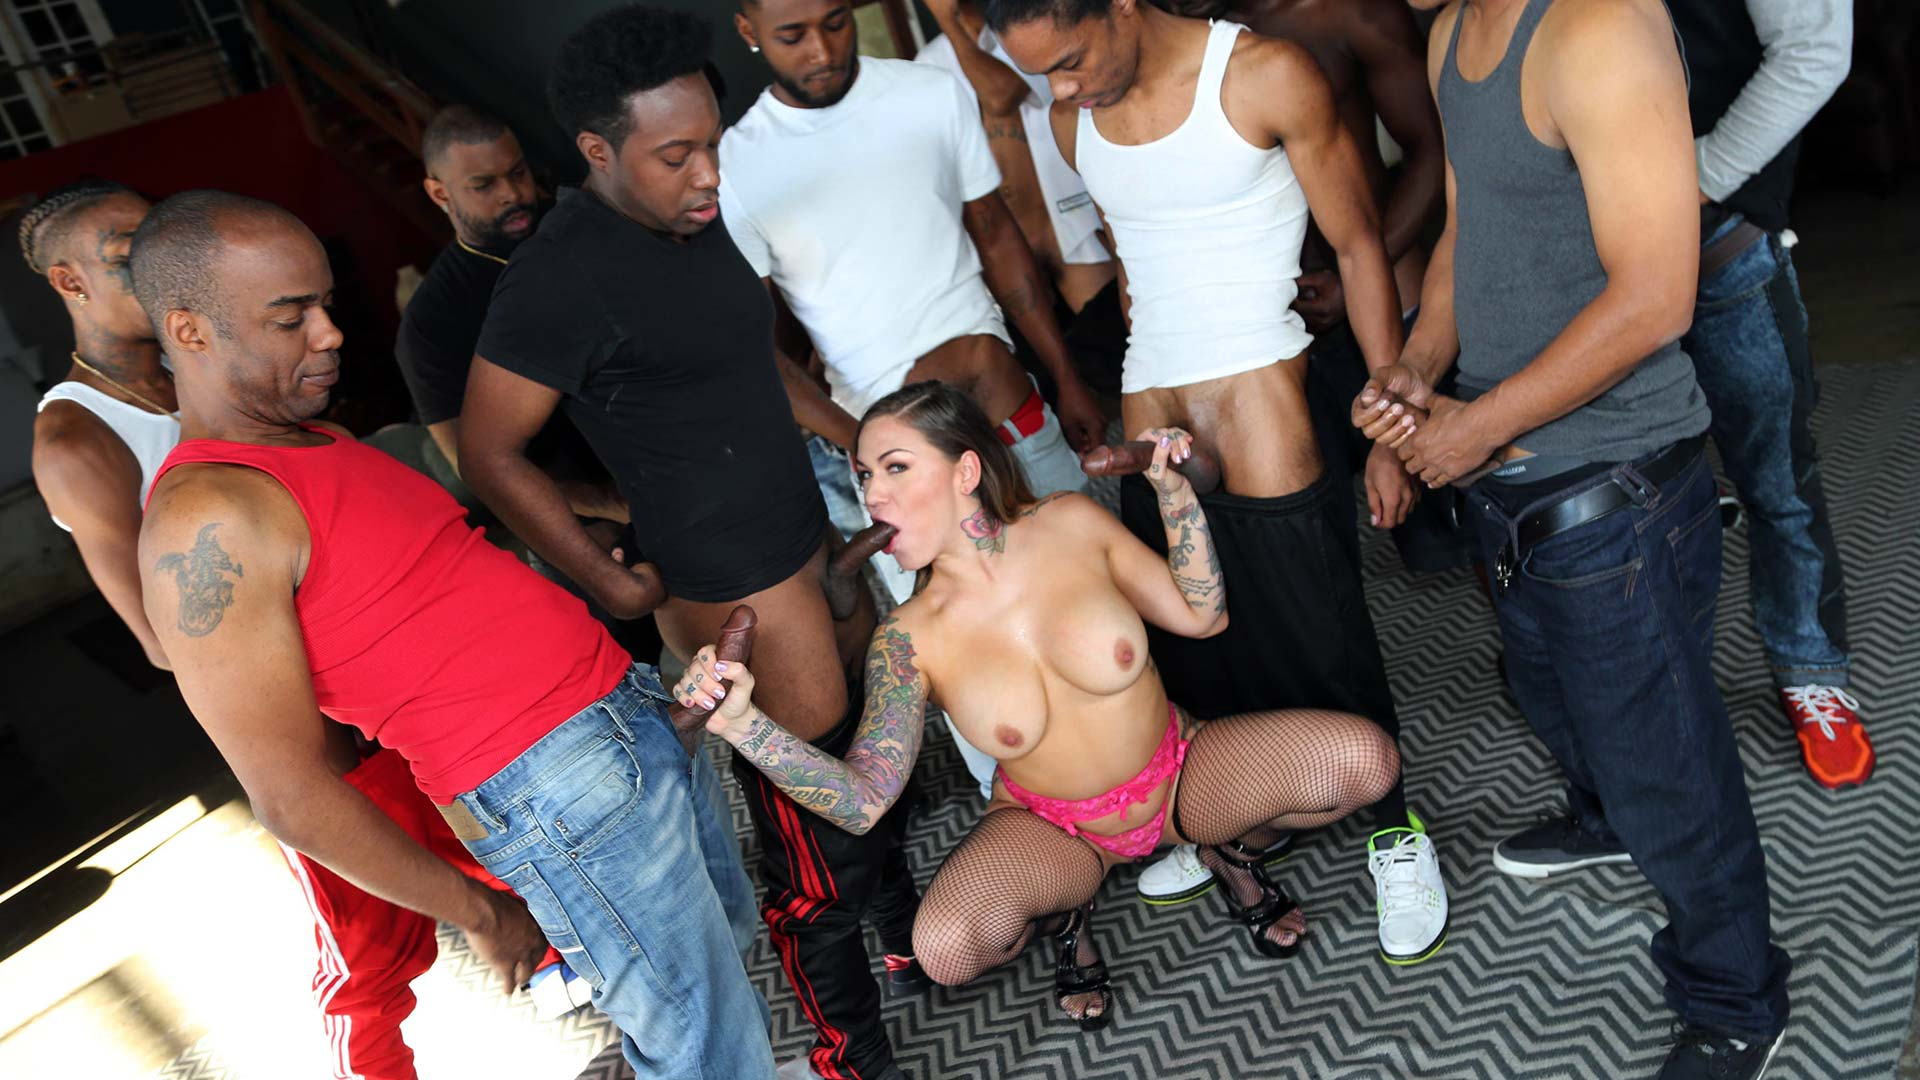 InterracialBlowbang Karmen Karma Interracial Porn